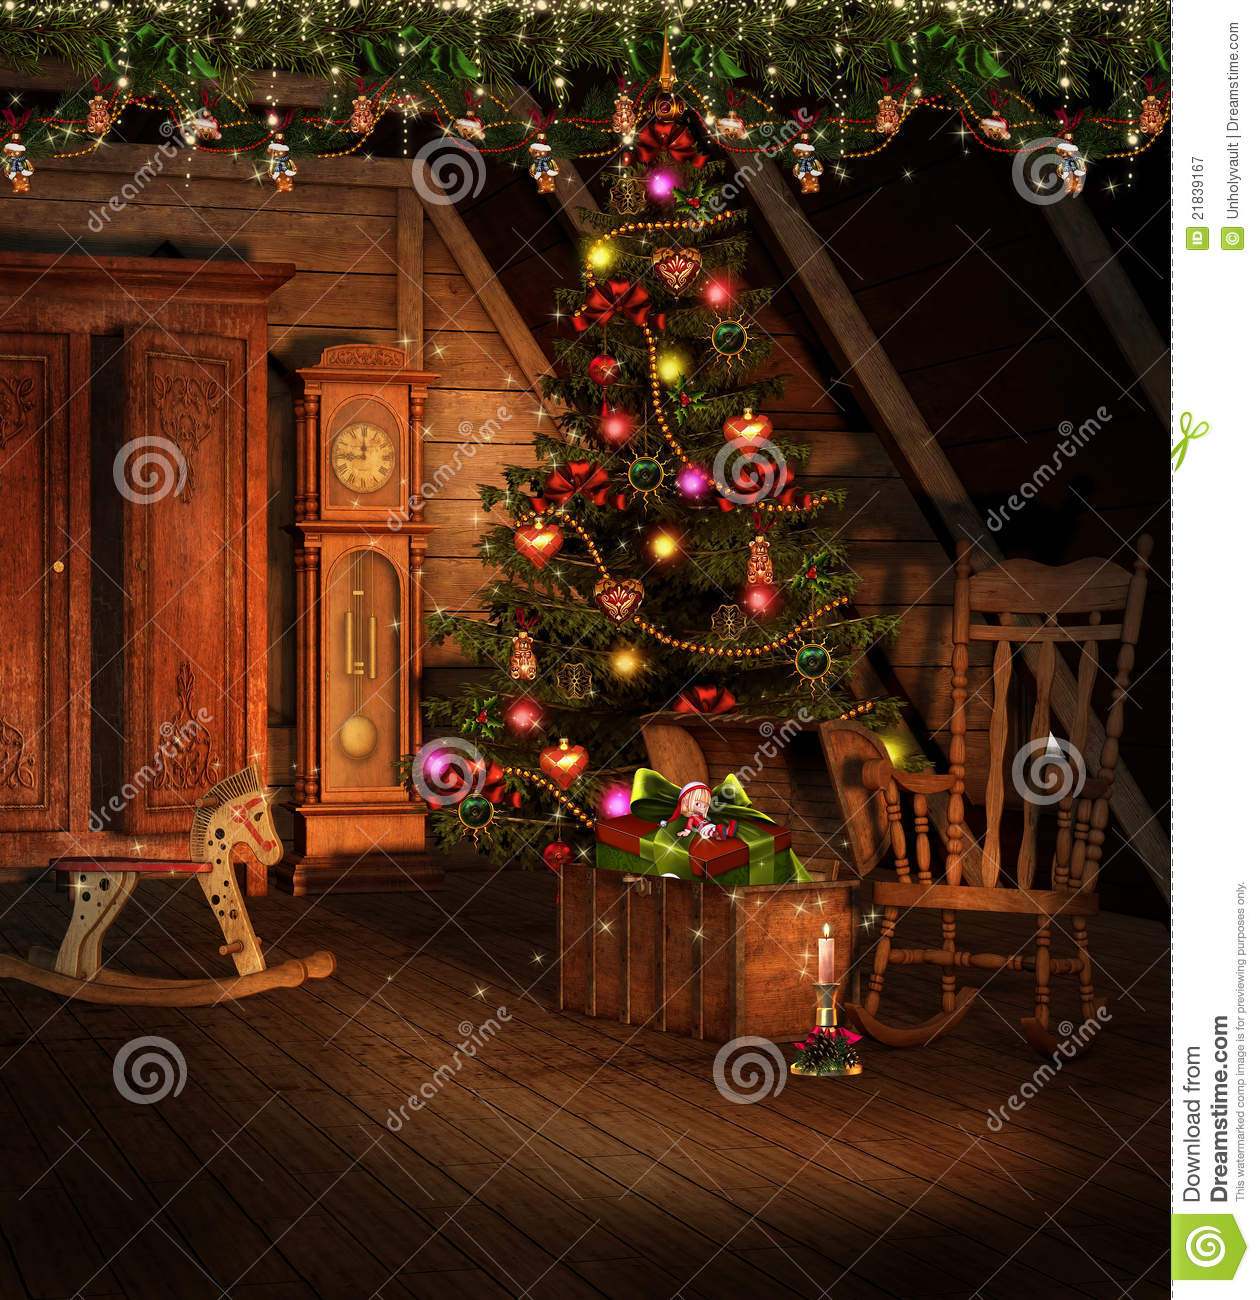 Decorations For A Halloween Party: Attic With Christmas Decorations Stock Illustration